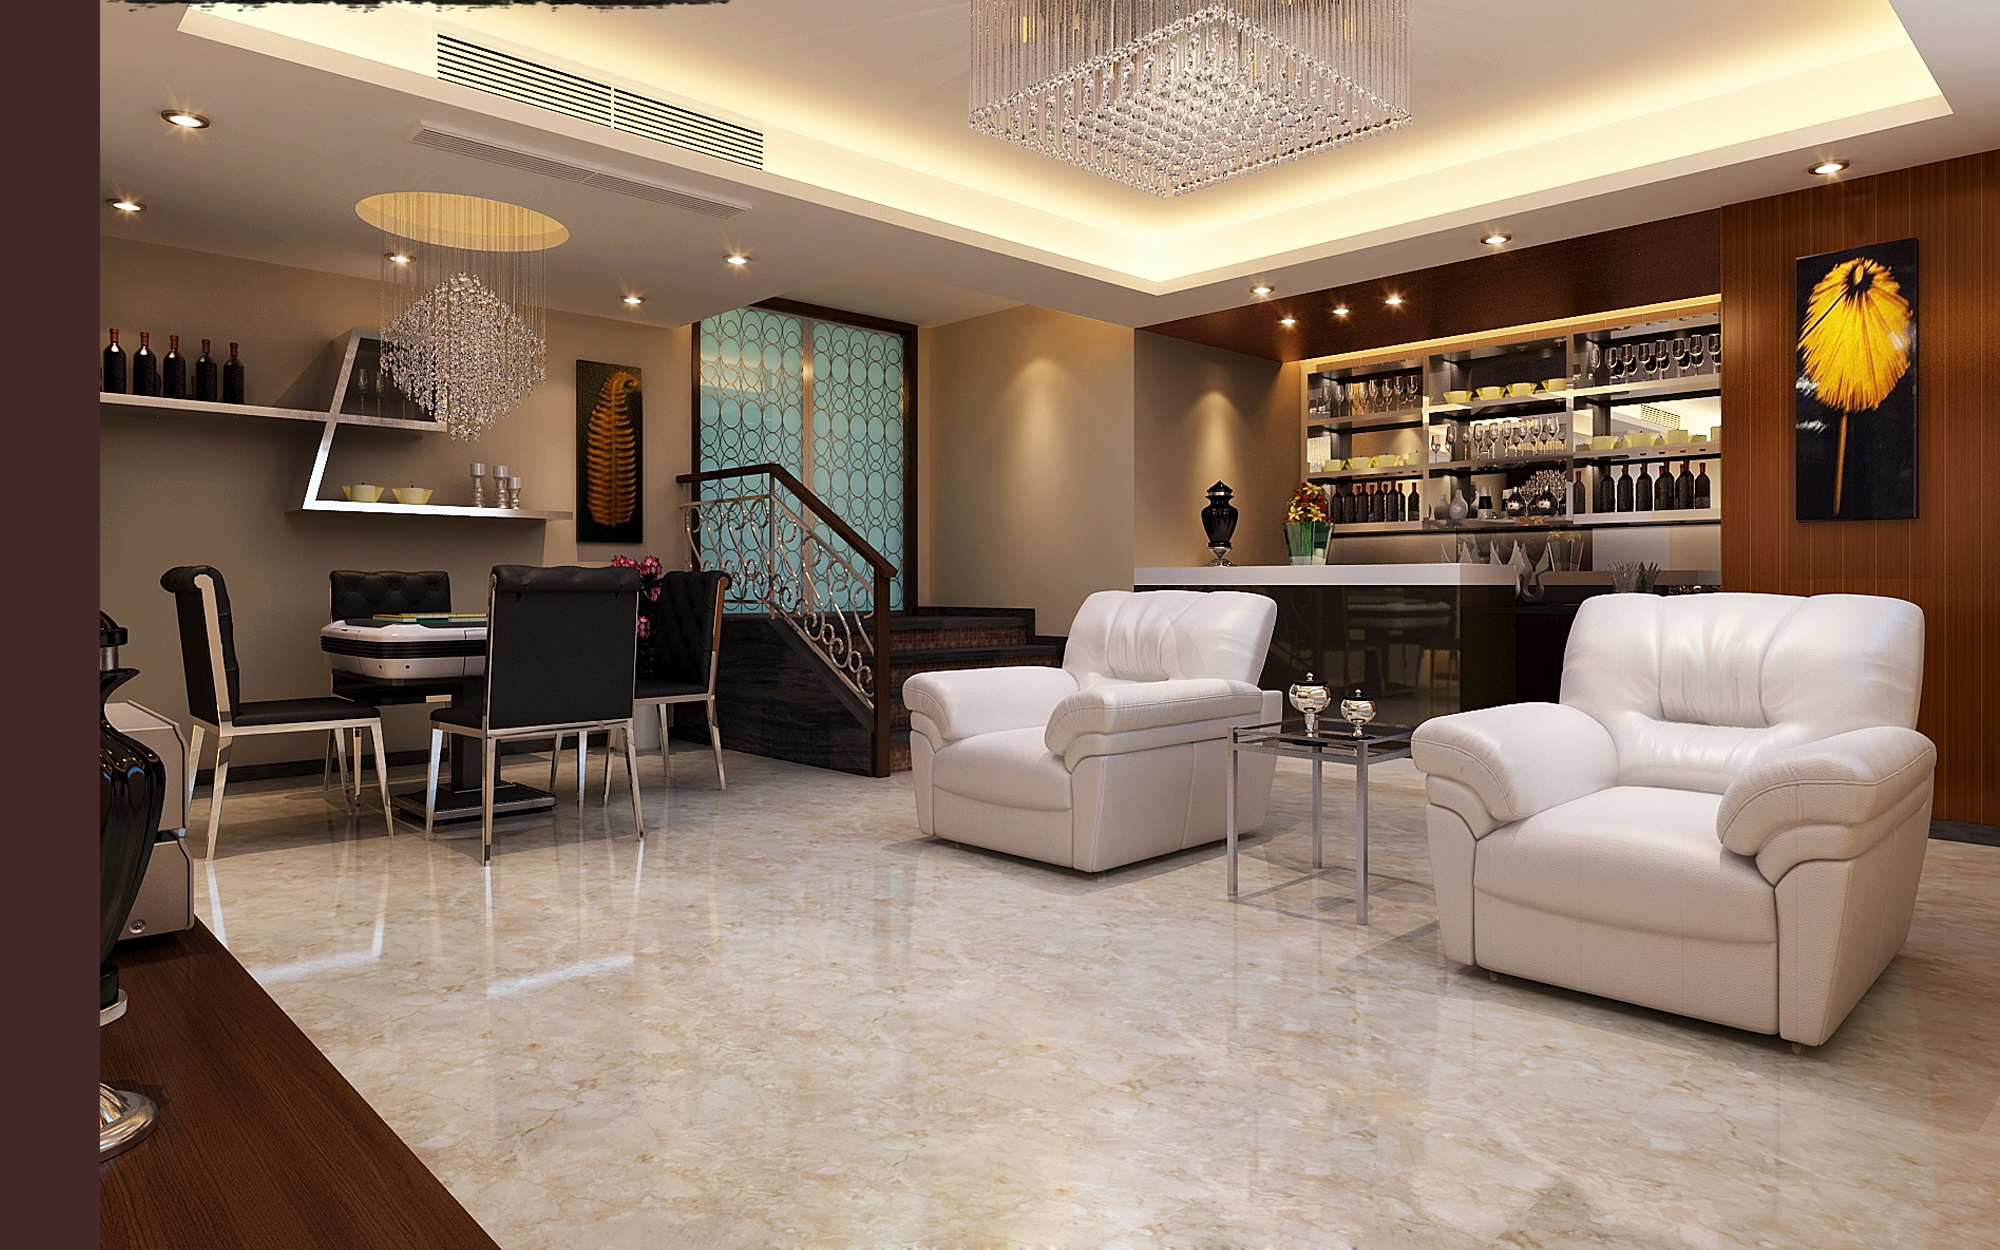 Modern living room with bar 3d model max 1